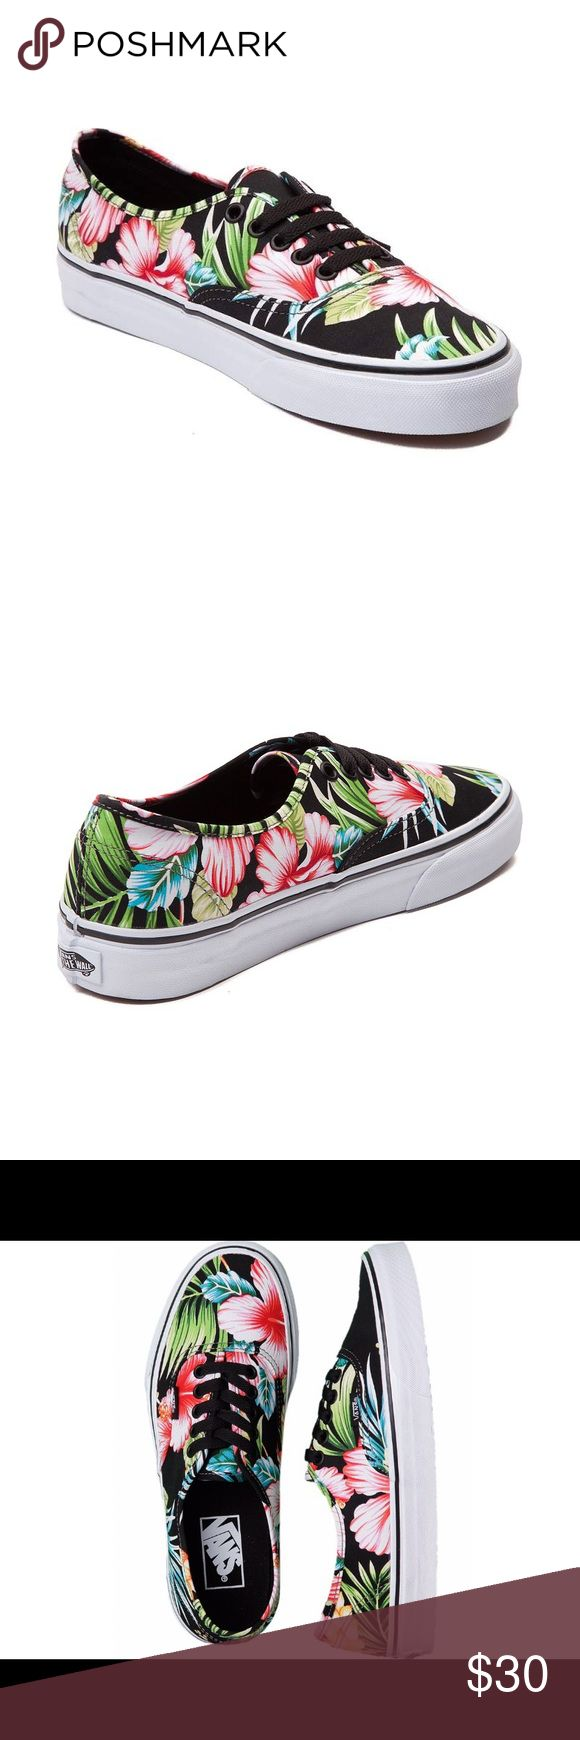 Vans Authentic Hawaiian Floral Black Sk8 Shoe These shoes are brand spankin new. I removed the tags when I first bought them but 100% completely unworn. They still have never even been laced up yet!  I included photos from the Internet to show what they will look like once they're laced up! Vans Shoes Sneakers